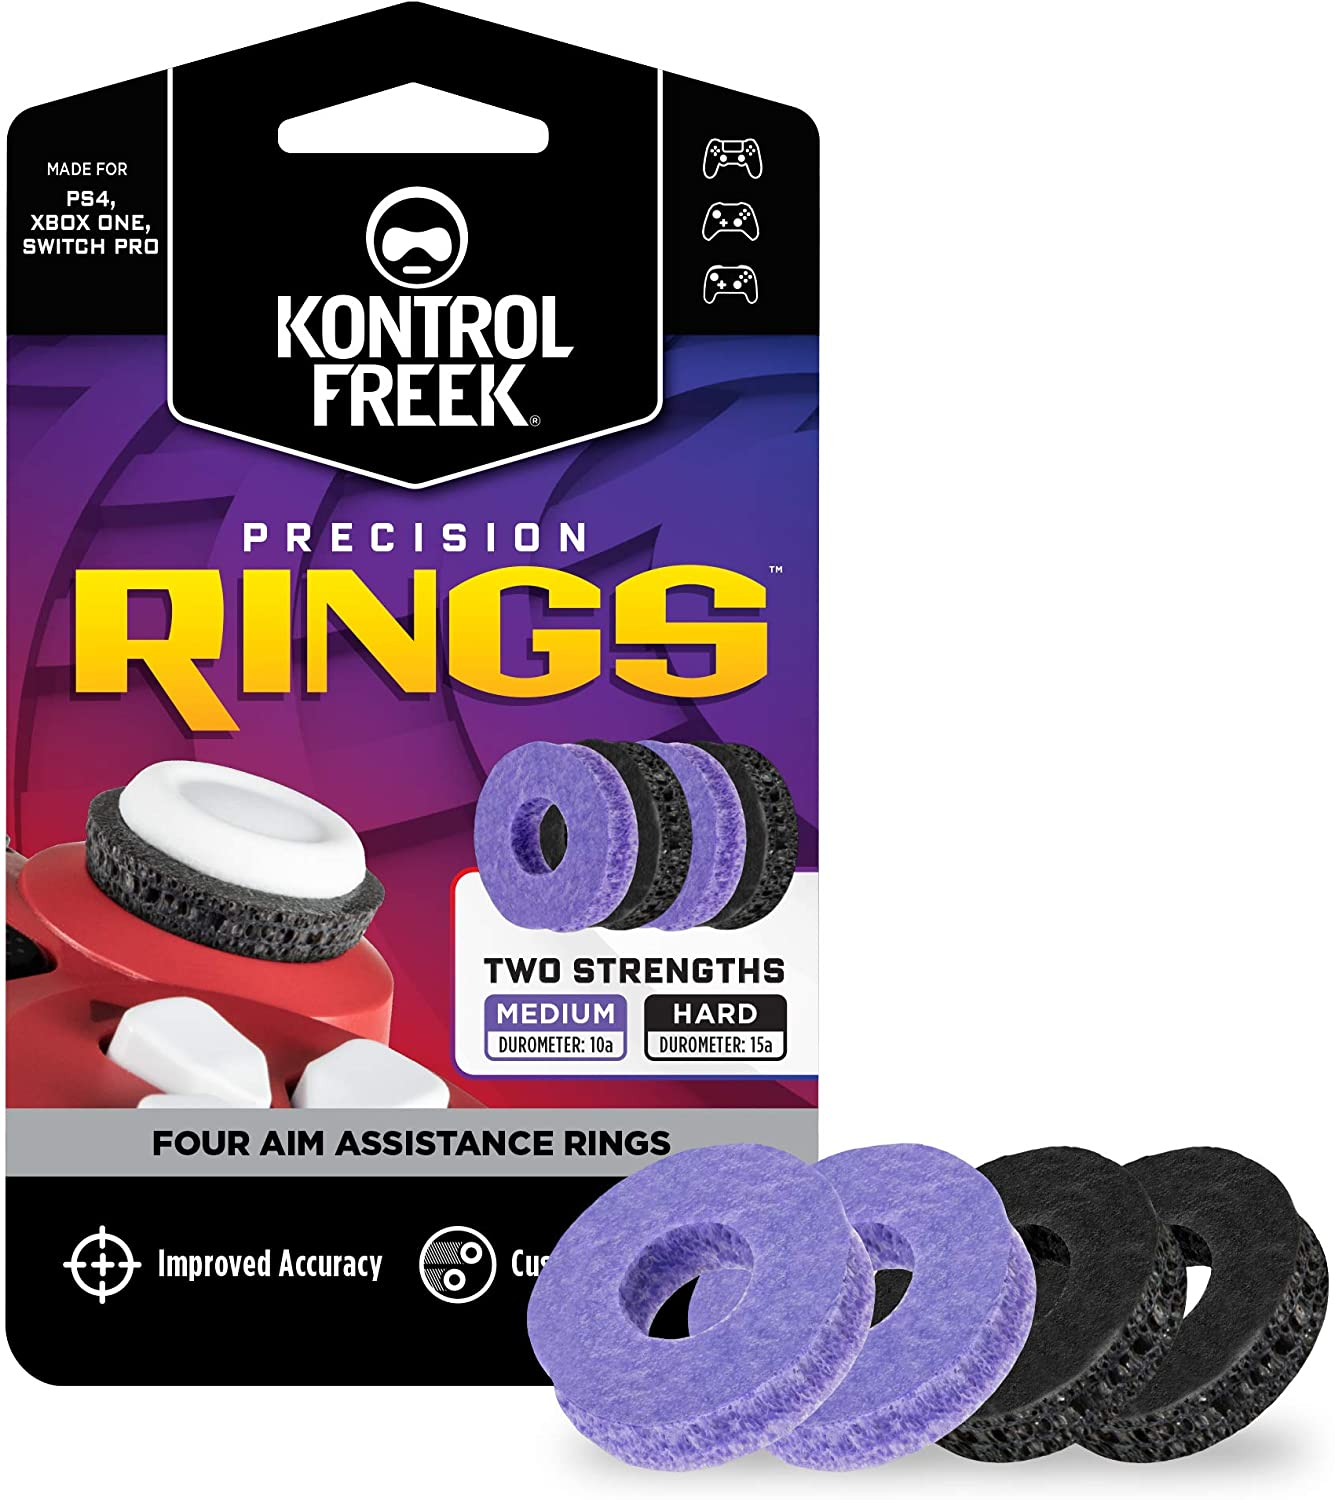 KontrolFreek Precision Rings | Aim Assist Motion Control for PlayStation 4 (PS4), PlayStation 5 (PS5), Xbox One, Switch Pro & Scuf Controller | 2 Different Strengths